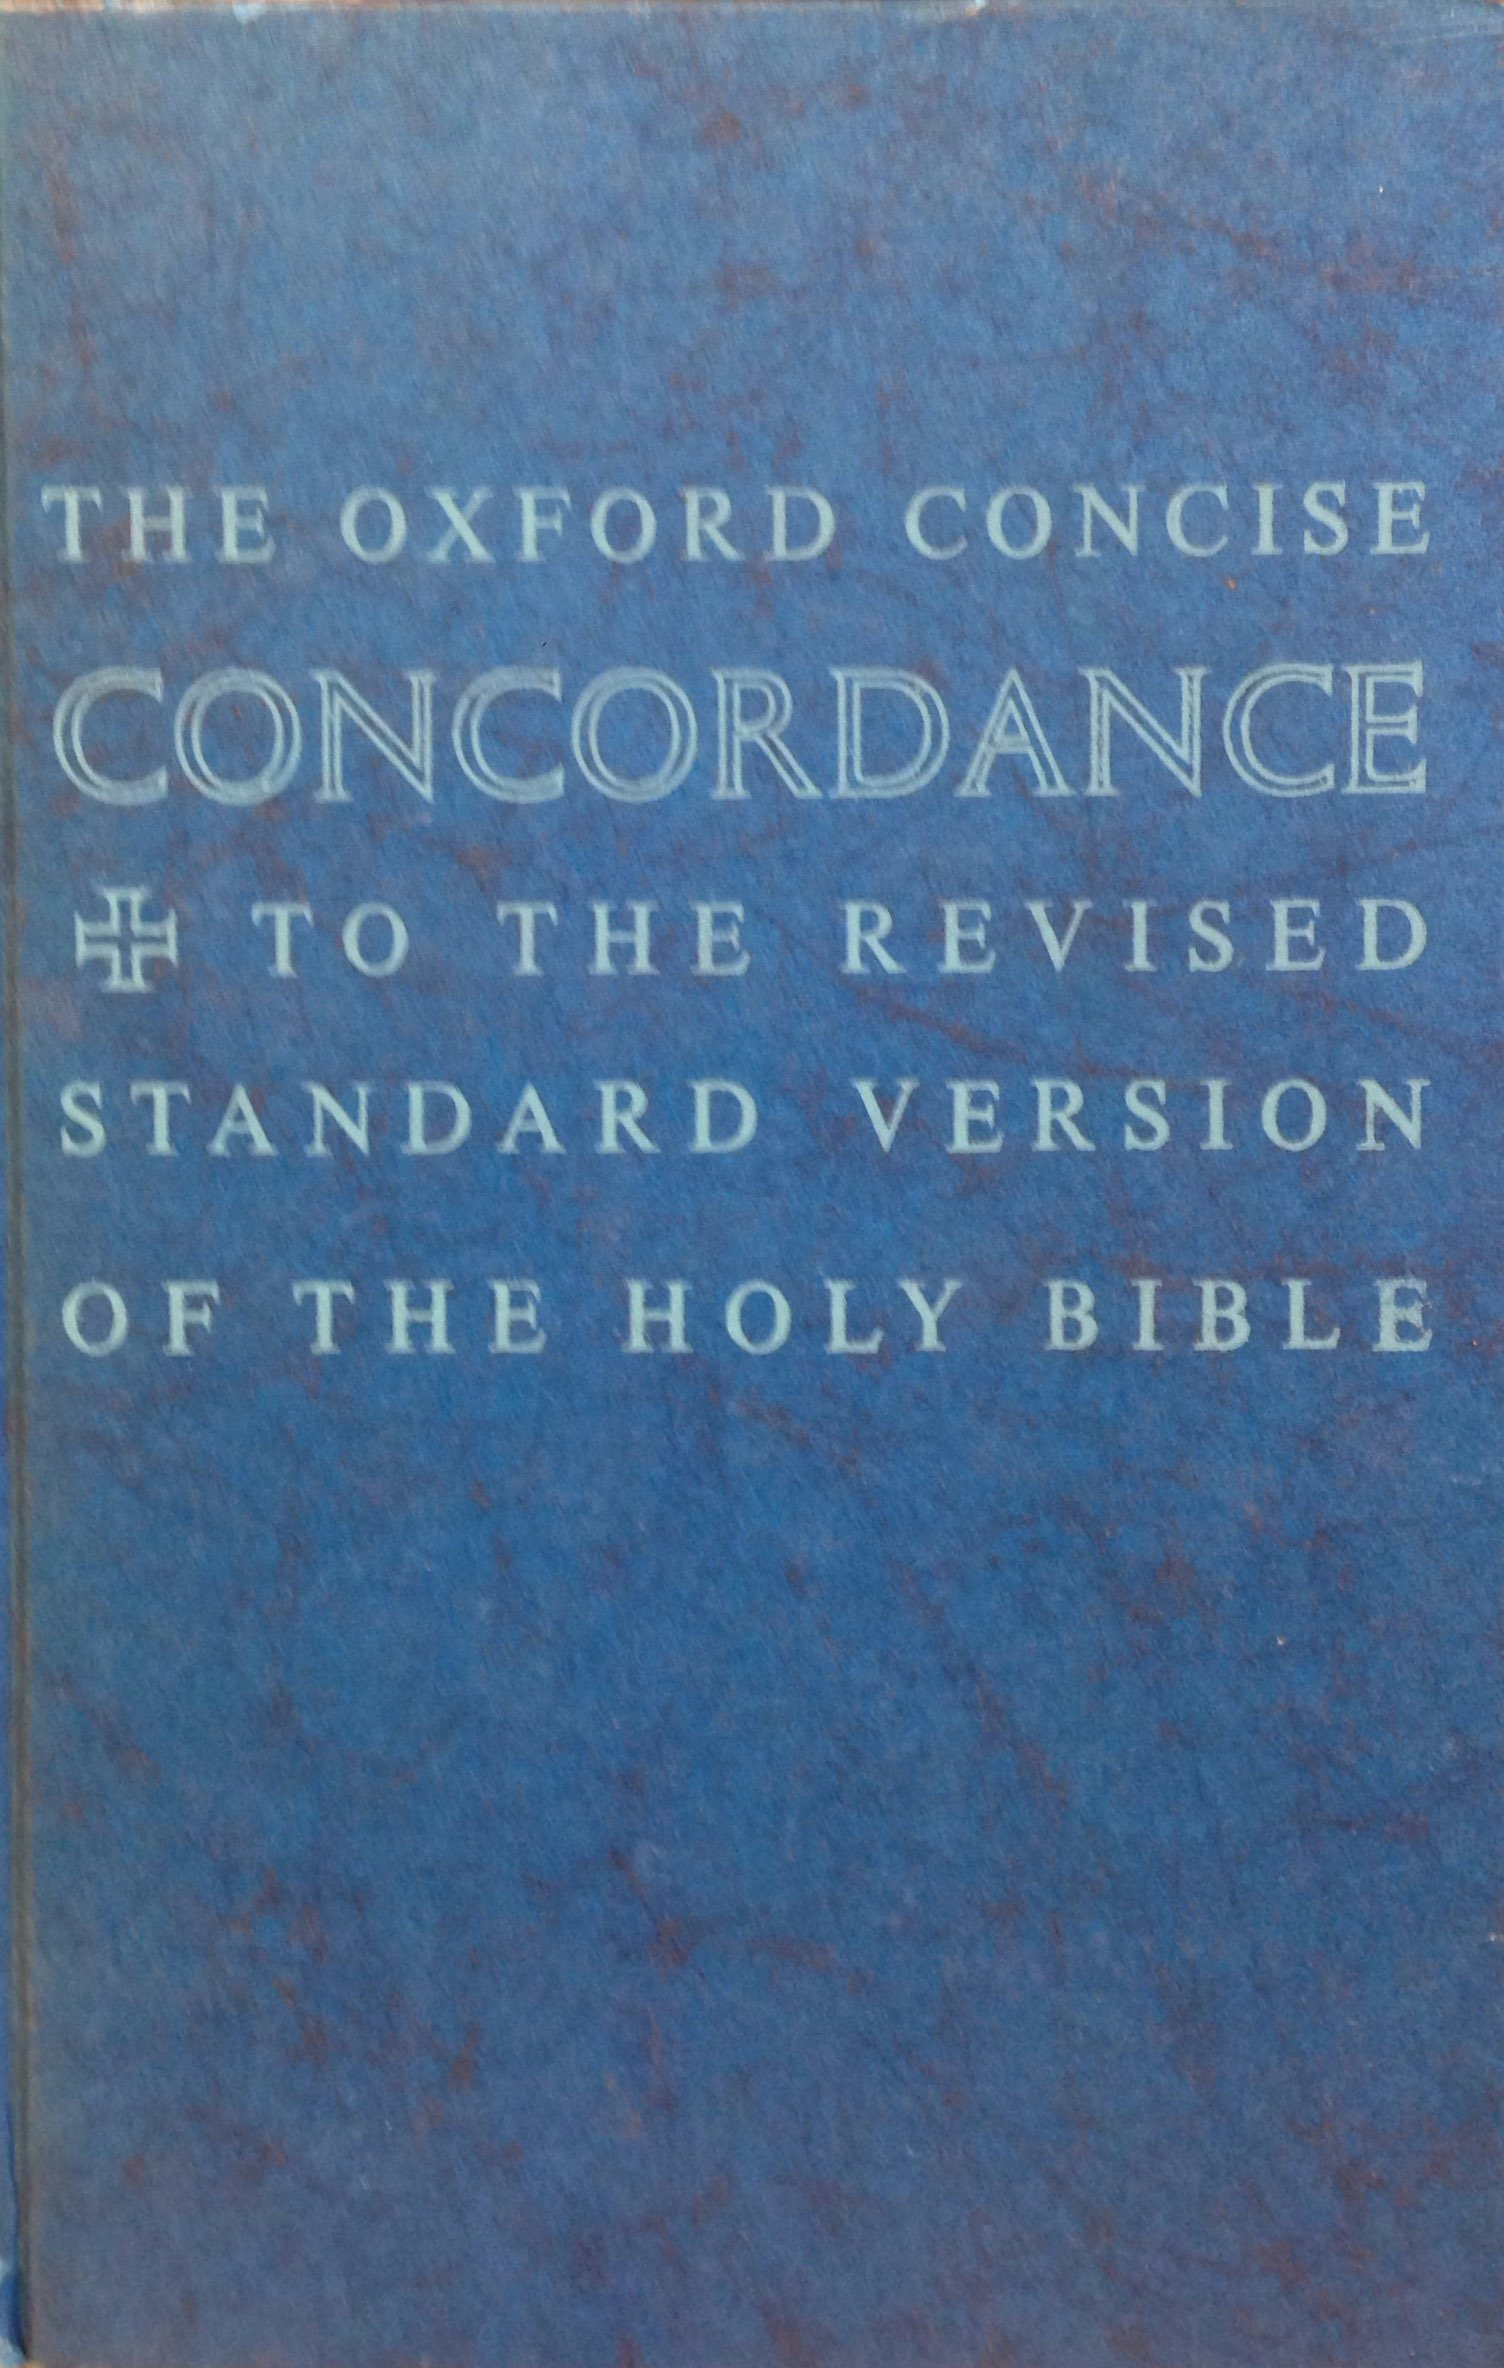 Oxford Concise Concordance to the Revised Standard Version of the Holy Bible / Compiled by Bruce M. Metzger and Isobel Metzger